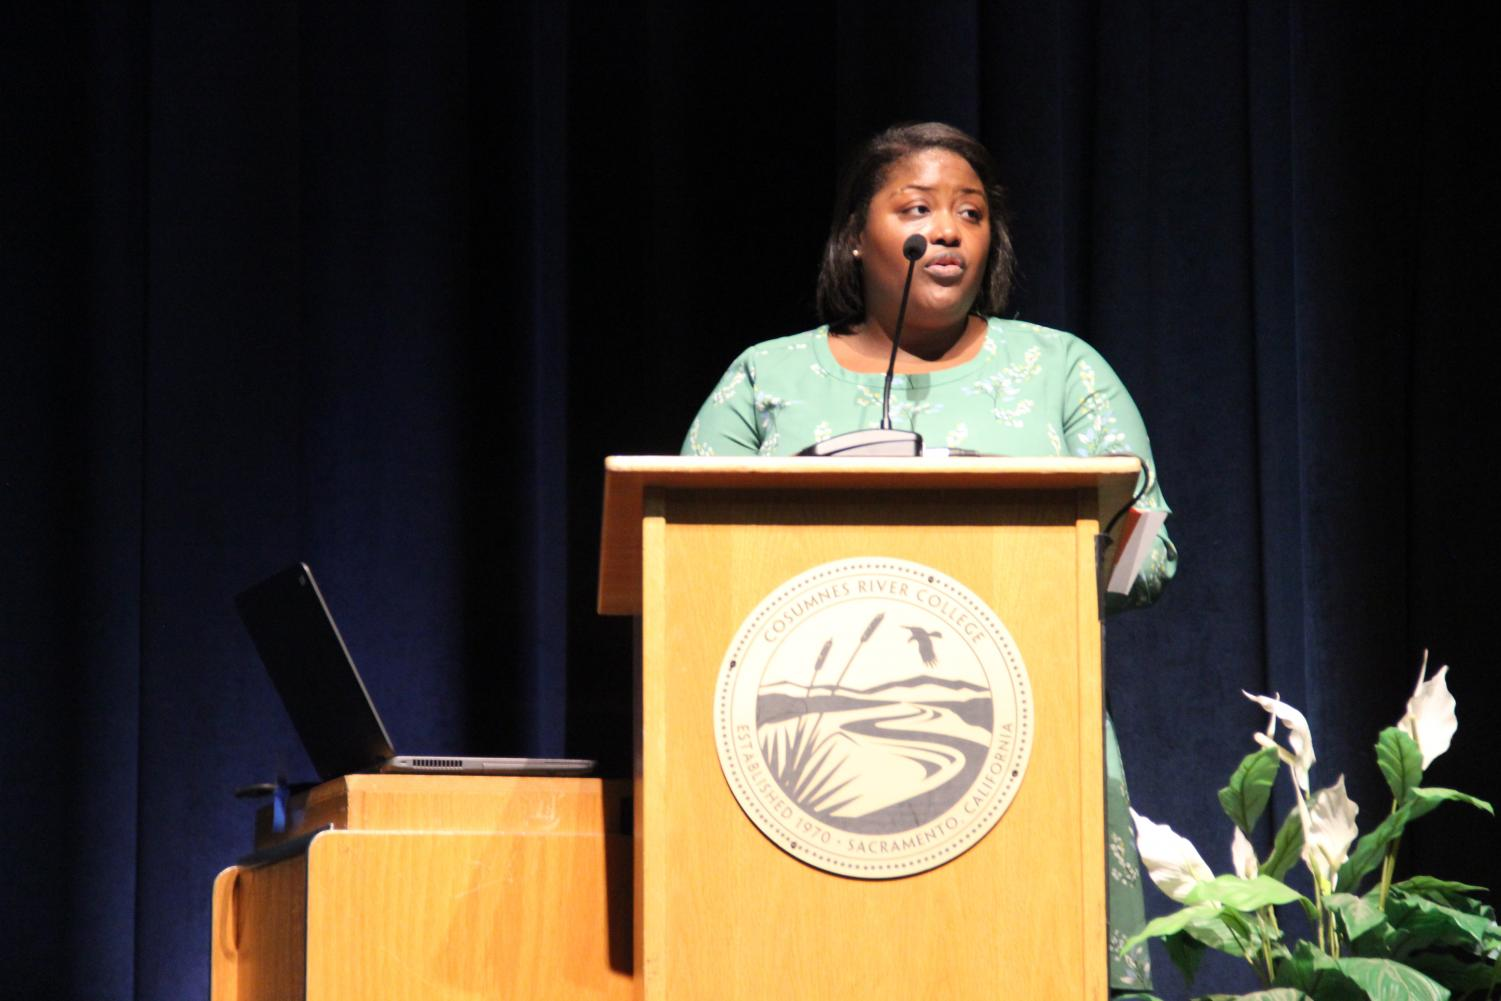 Main speaker Keisha Ray explains to the audience that black women in America are three times more likely to die during or soon after childbirth than white women. The event was part of the two-day Fall Ethics Symposium, the second day held at Cosumnes River College on Nov. 19.